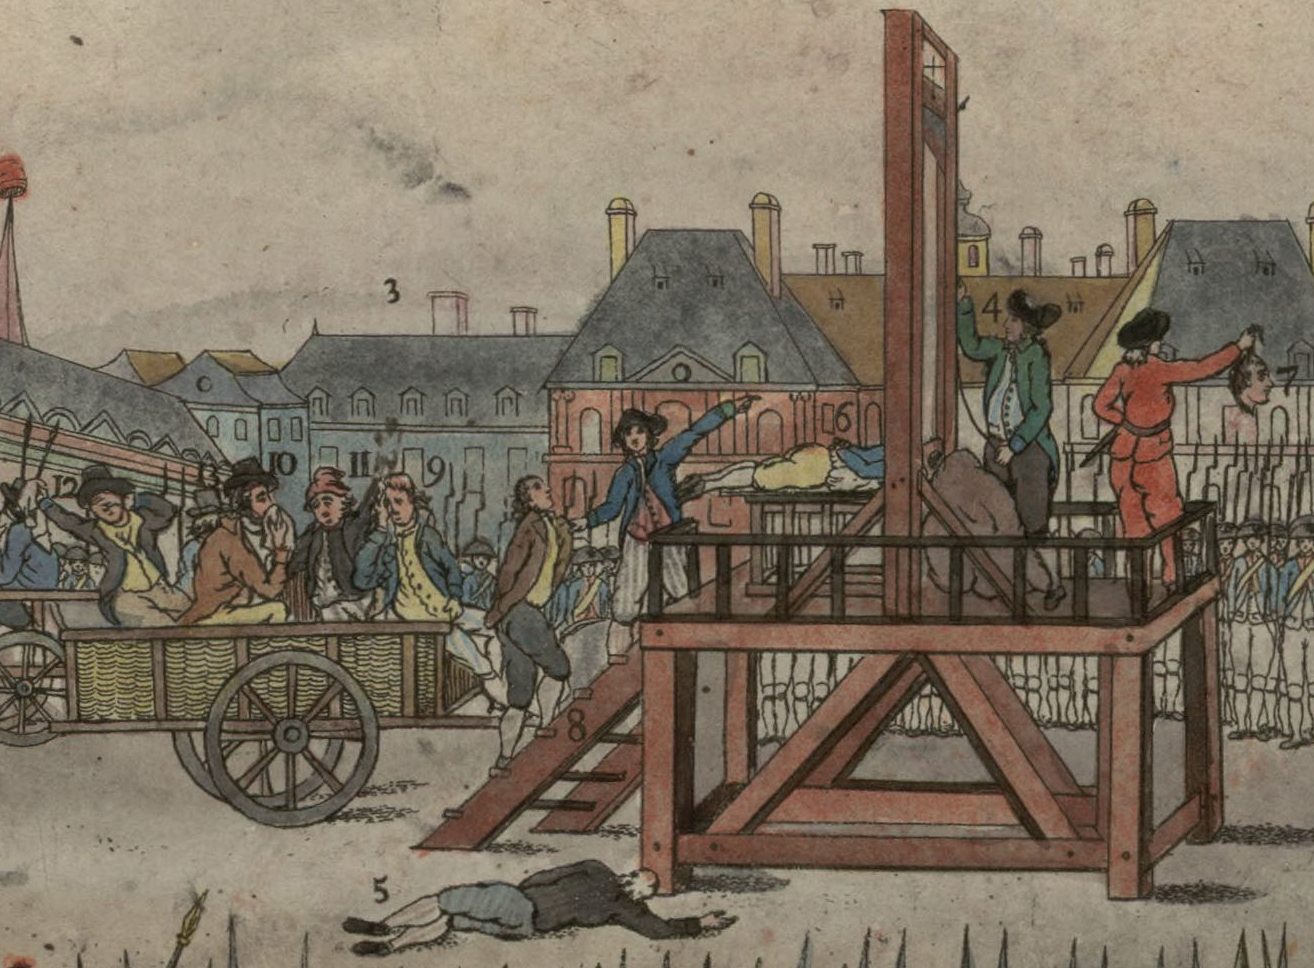 A naïve (but contemporary) depiction of Robespierre and pals being brought to the guillotine at the Place de la Révolution. Couthon lies decapitated, his head displayed to the crowd; Augustin Robespierre is led onto the scaffold. In the tumbril, per the numbering provided, is: (9) Hanriot, (10) Robespierre, showing the slightest hint of his grotesque facial wound, (11) Dumas, (12) Saint-Just, flourishing his handkerchief melodramatically, (13) Lescot Fluriot,mayor of Paris, with his back to the camera. On the ground lies the suicided corpse of Lebas (brought there for the occasion?) Item (4) is Sanson, the state executioner, and (3) is the location of the  Faubourg de Saint-Germain , for a bit of local colour.(Full version via   Wikipedia  )